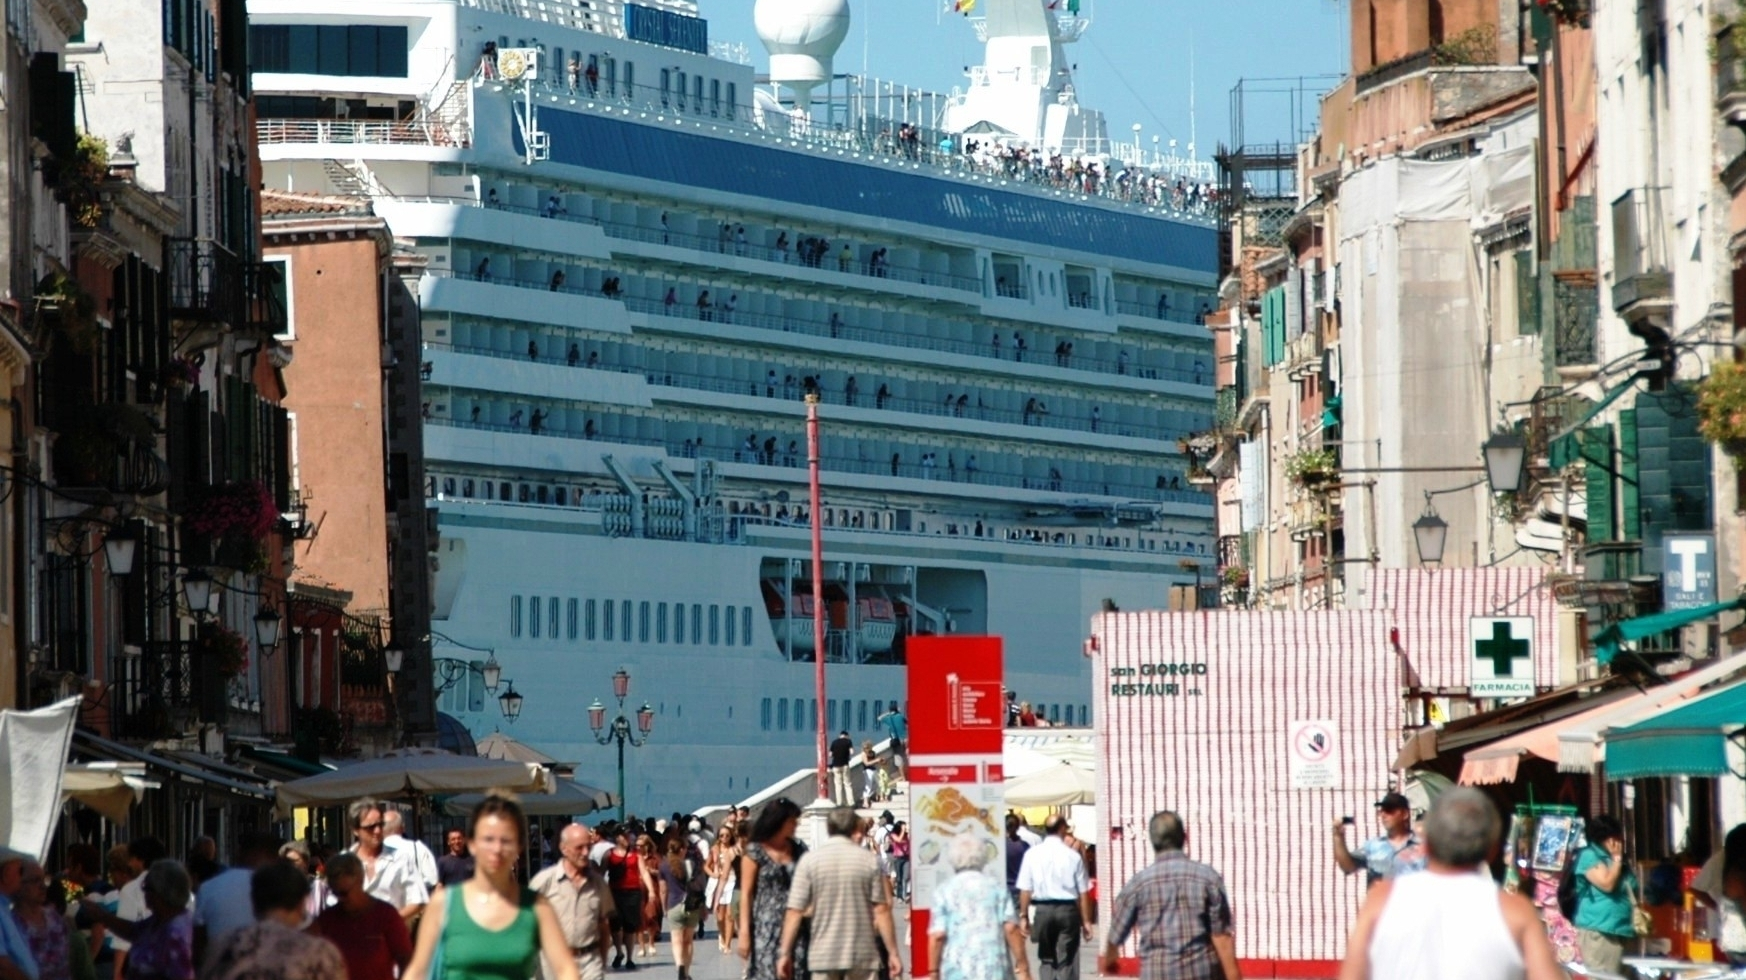 In Venice Huge Cruise Ships Bring Tourists And Complaints